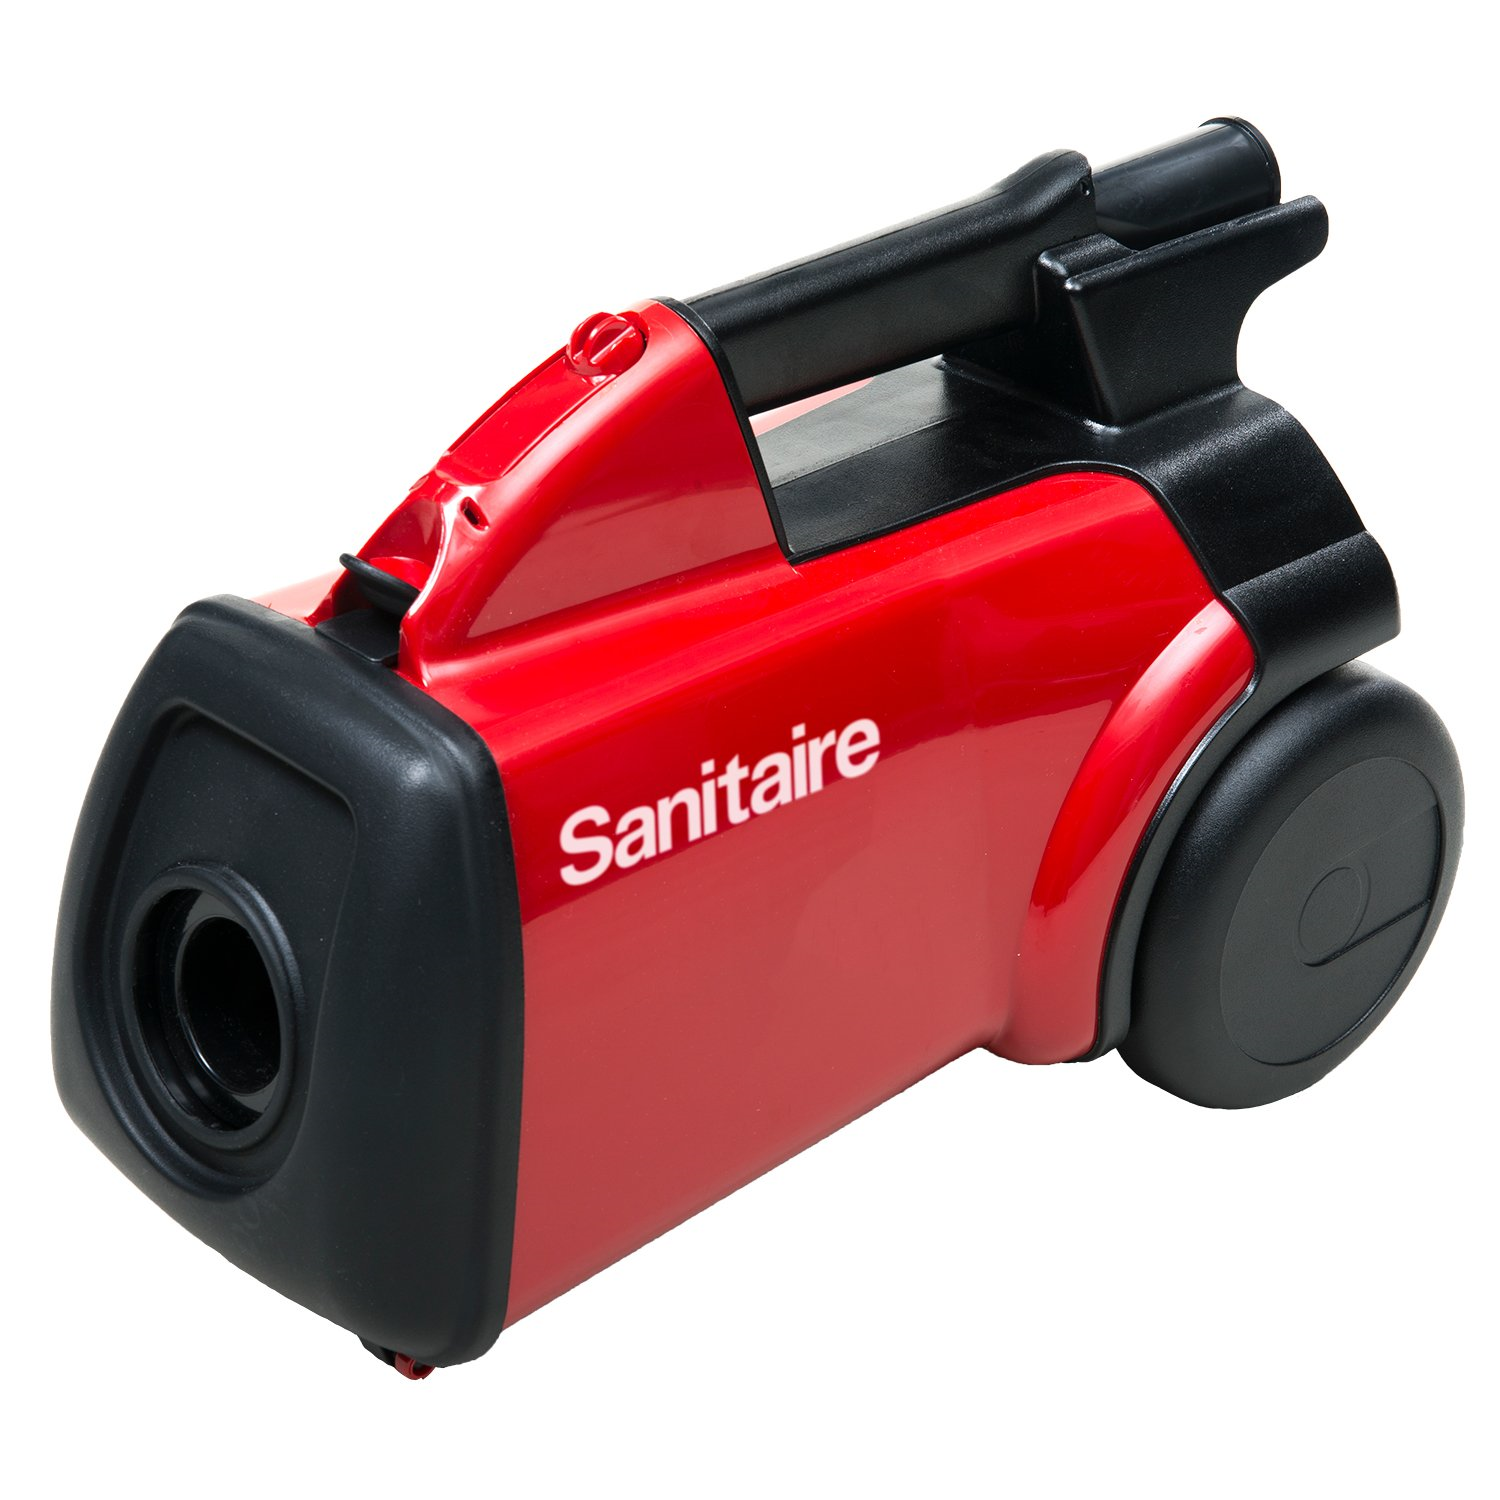 SC3683 Commercial Sanitaire Canister Vacuum